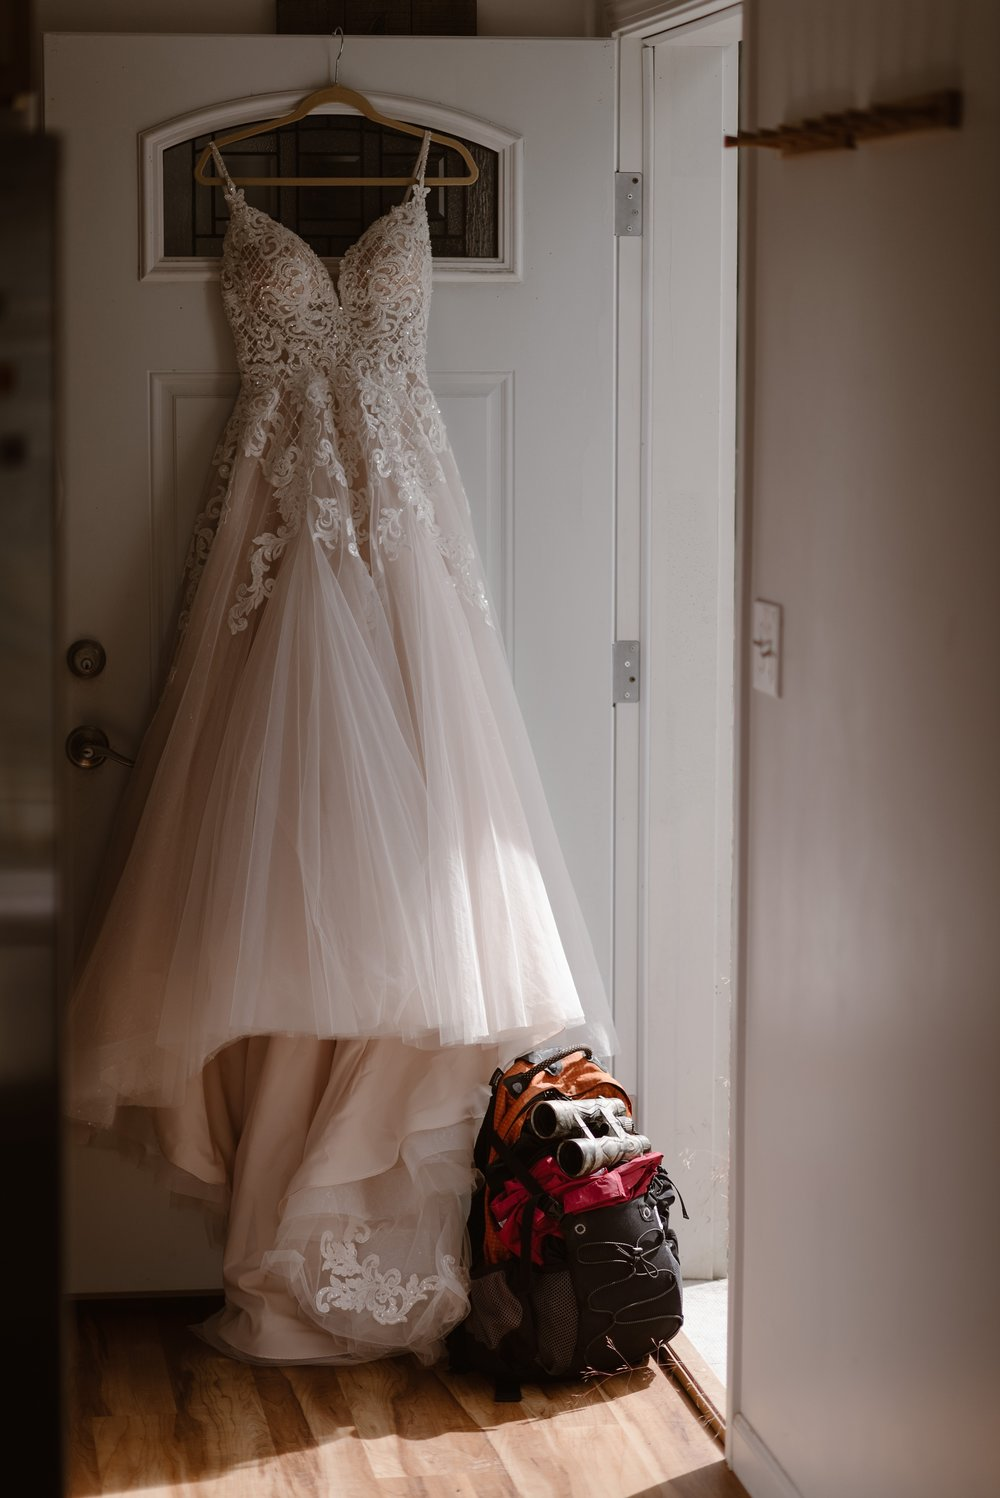 The white, champagne, and lace wedding dress hangs from the door of the front of the Airbnb before this couple's Alaska's helicopter elopement story begins. Beneath the skirt is a backpack and a pair of dirt-covered binoculars.